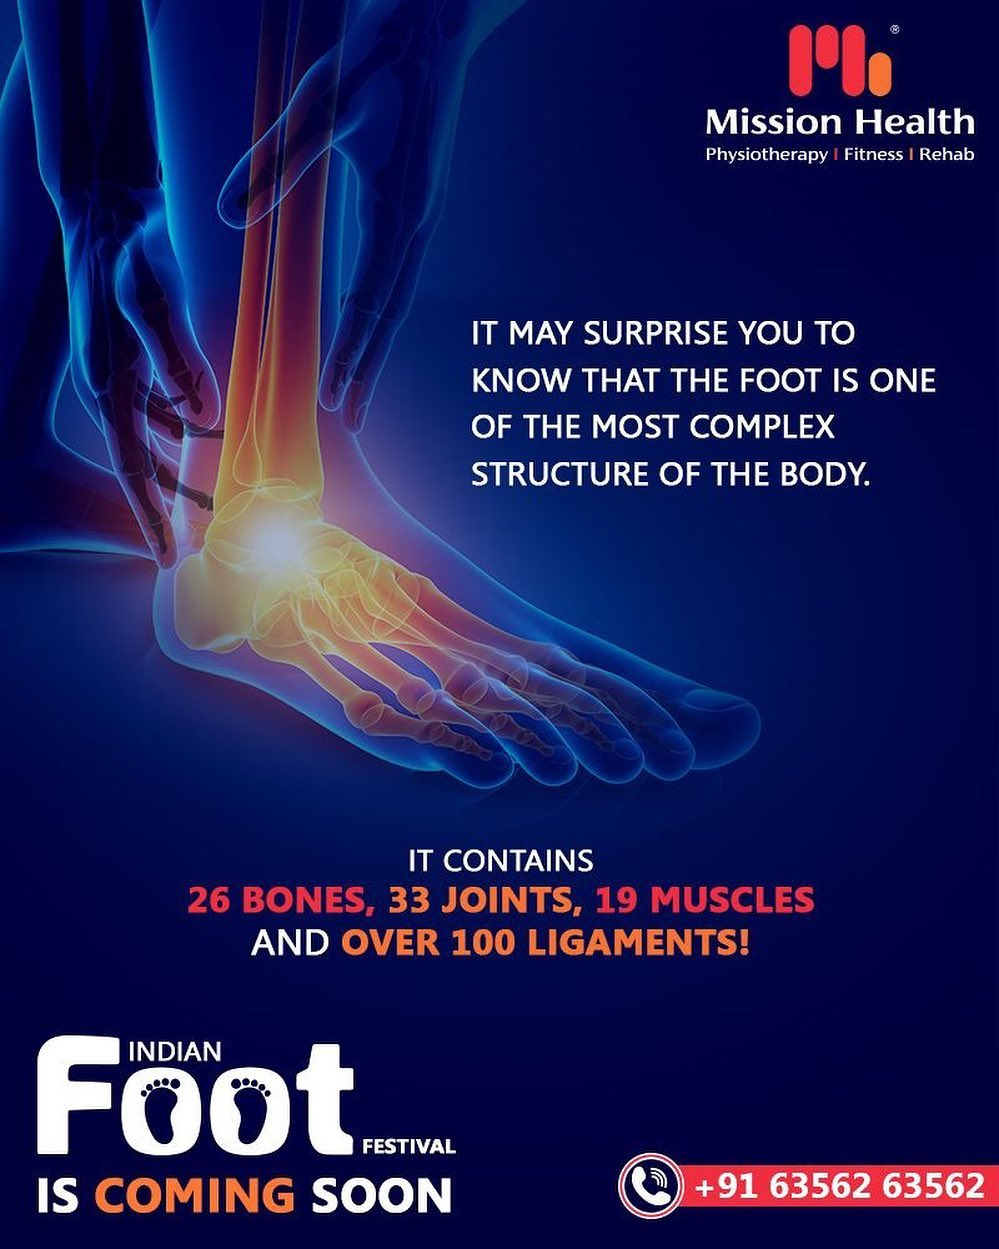 The foot contains 26 bones, 33 joints, 19 muscles, and over 100 ligaments!  The Indian Foot Festival is coming soon... Keep Reading this space for more updates! Call: +916356263562 Visit: www.missionhealth.co.in  #IndianFootFestival #ComingSoon #FootClinic #footpain #footcare #foothealth #heelpain #anklepain #flatfeet #painrelief #healthyfeet #happyfeet #MissionHealth #MissionHealthIndia #MovementIsLife